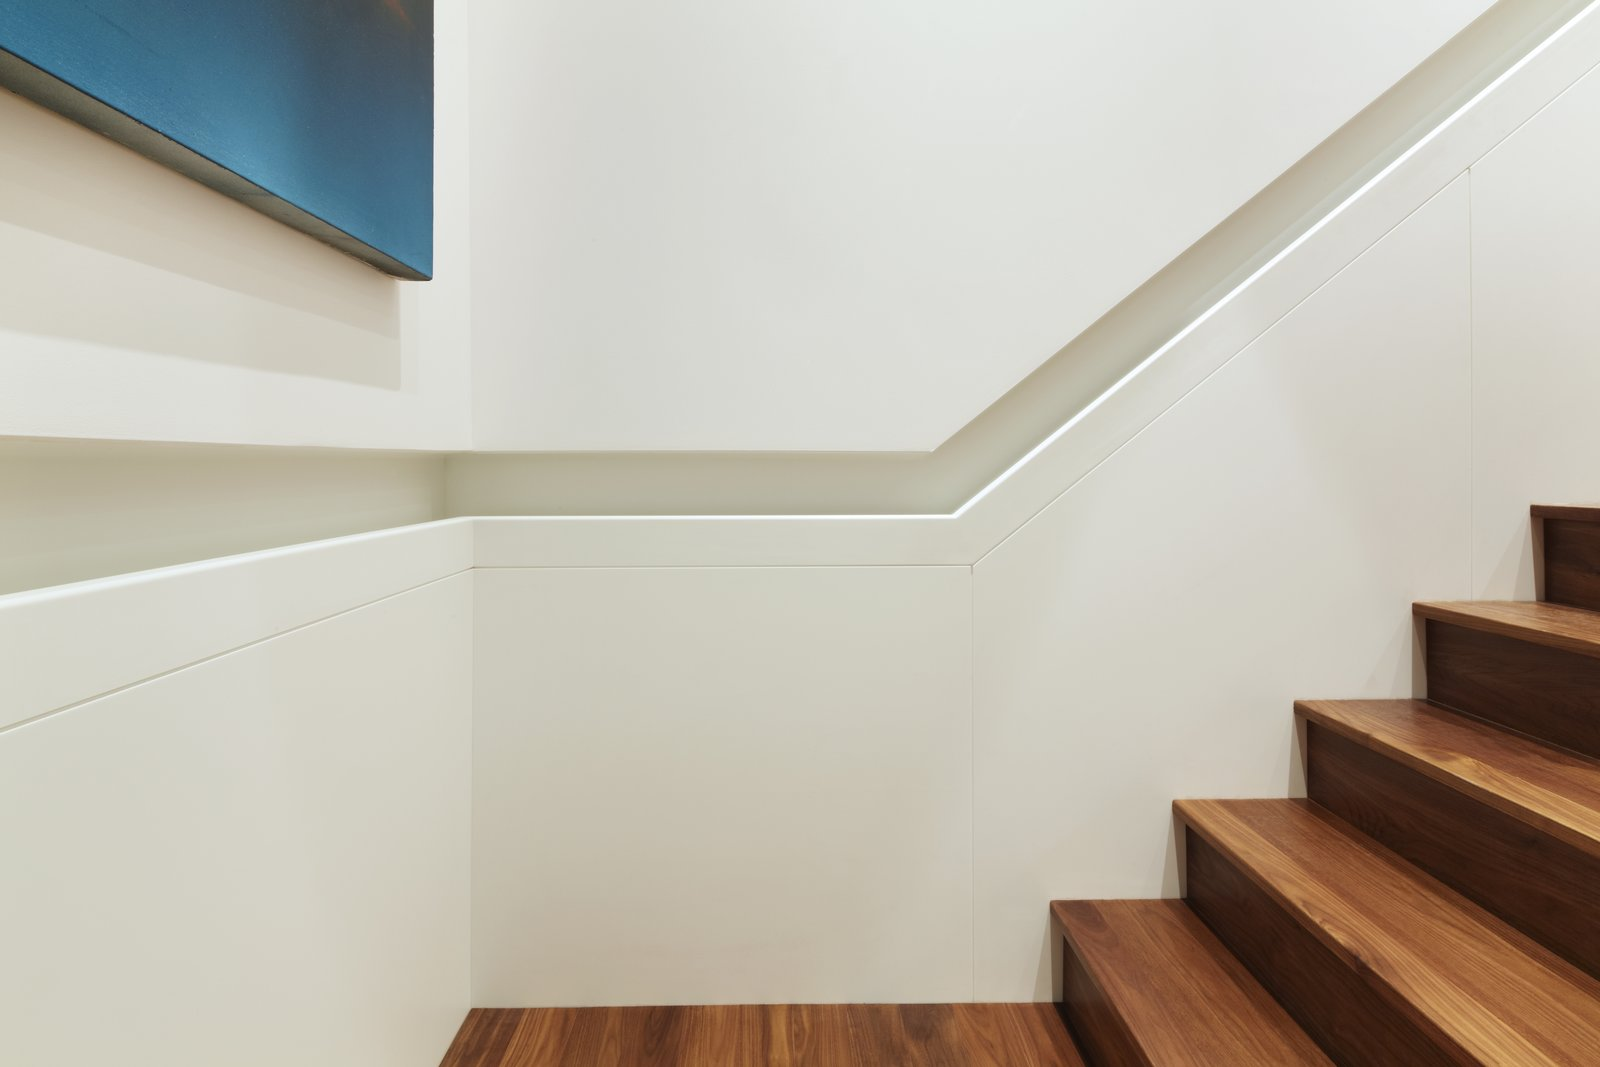 A detail photo of the inset handrail.  The lower panels and handrail are fabricated from Glacier White Corian - above the handrail is skim coated drywall painted to match.  The handrail runs continuously from the lower floor to the penthouse.  White Street Residence by pulltab